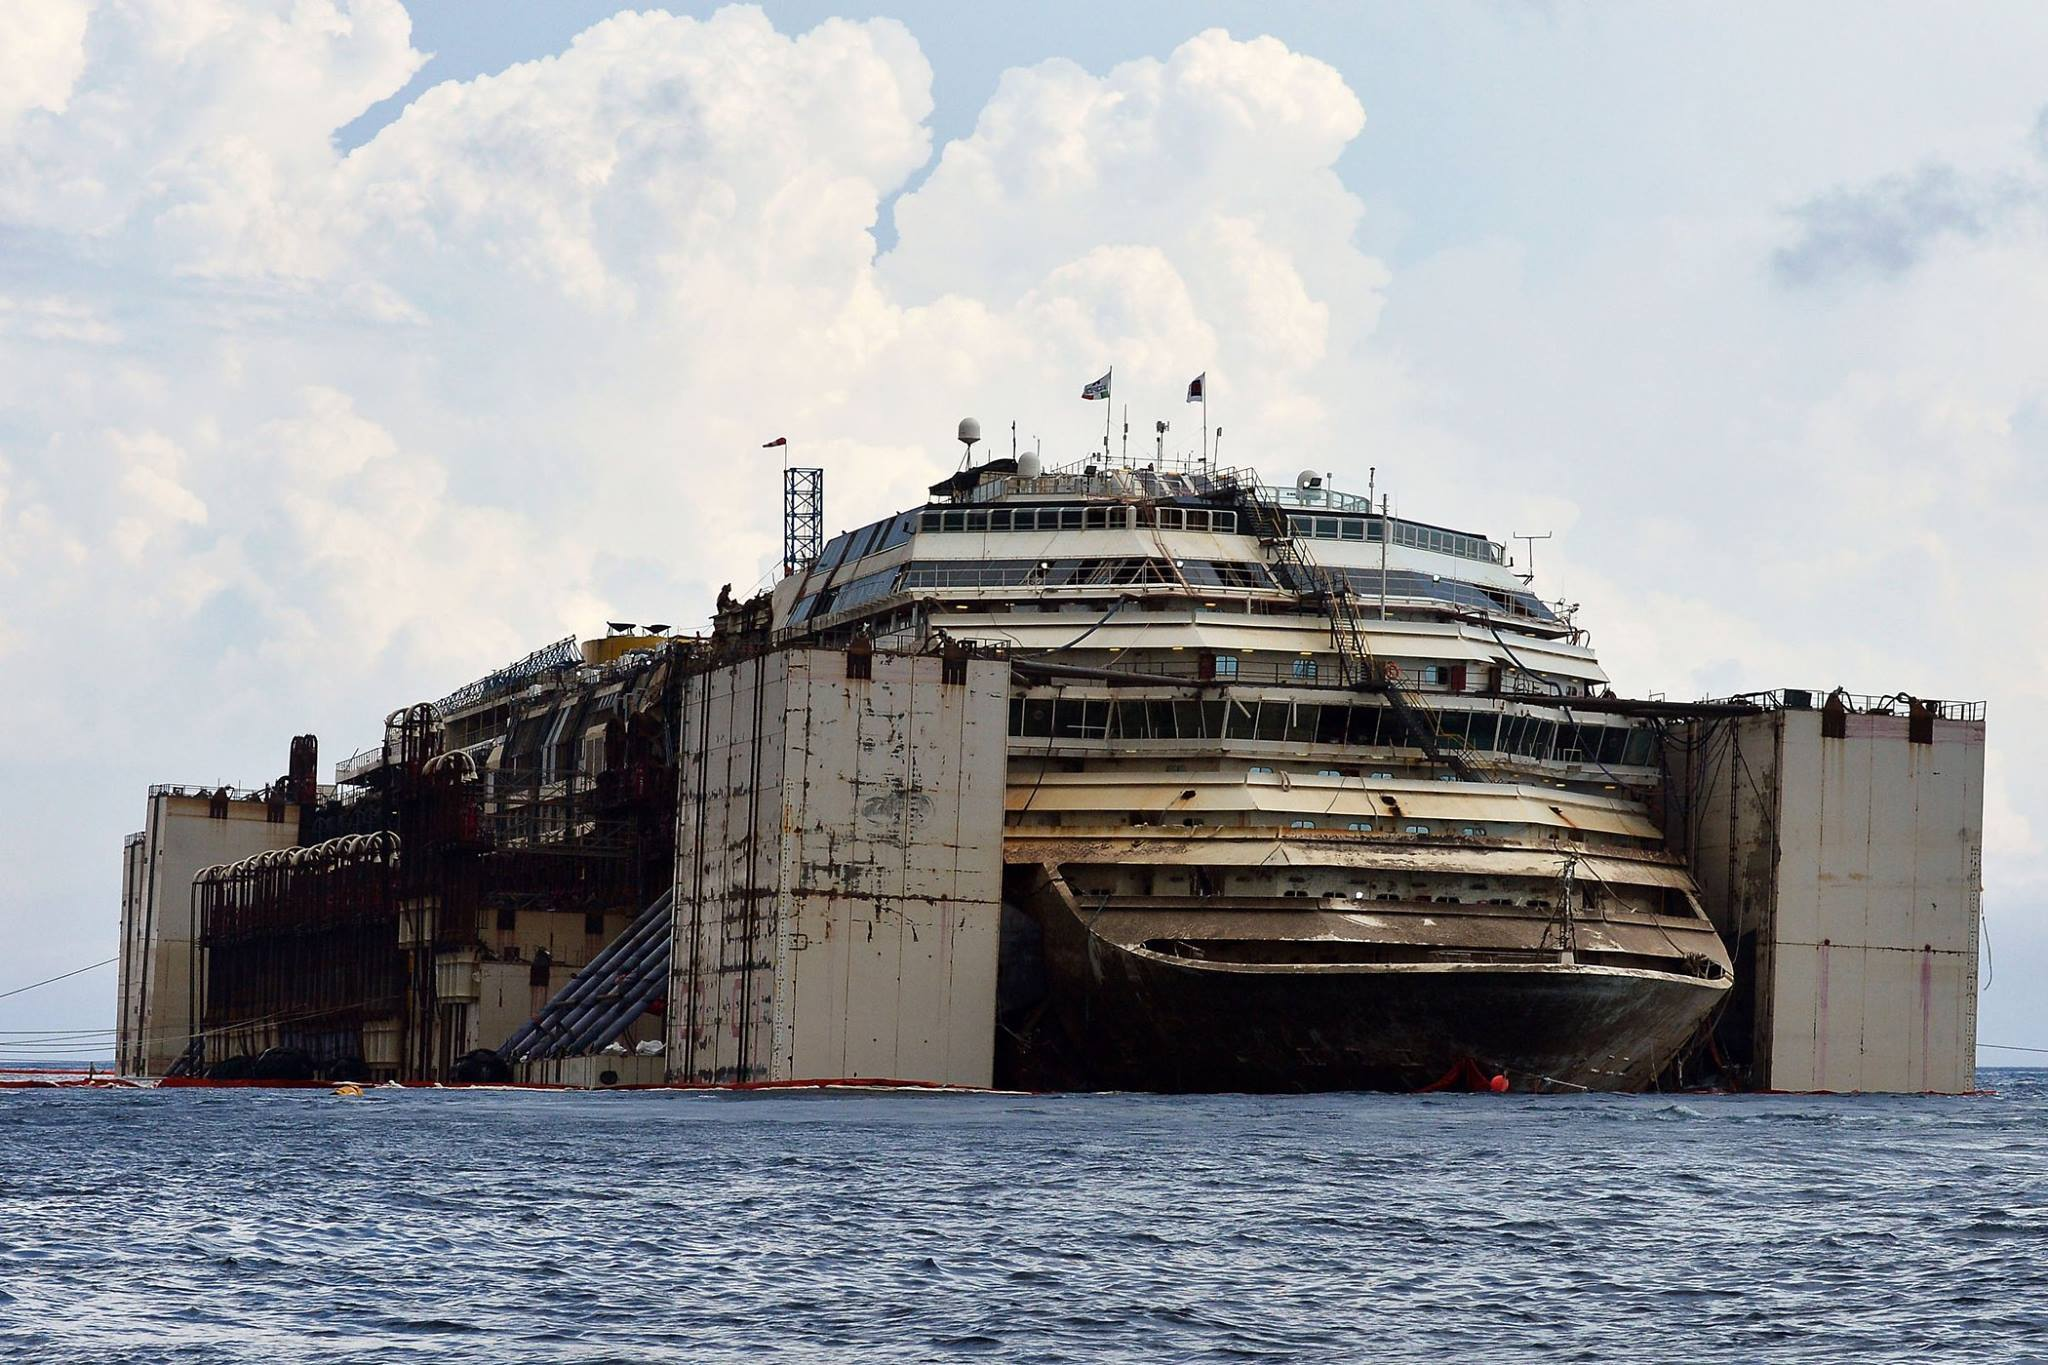 Costa Concordia: Voyage of Tragedy